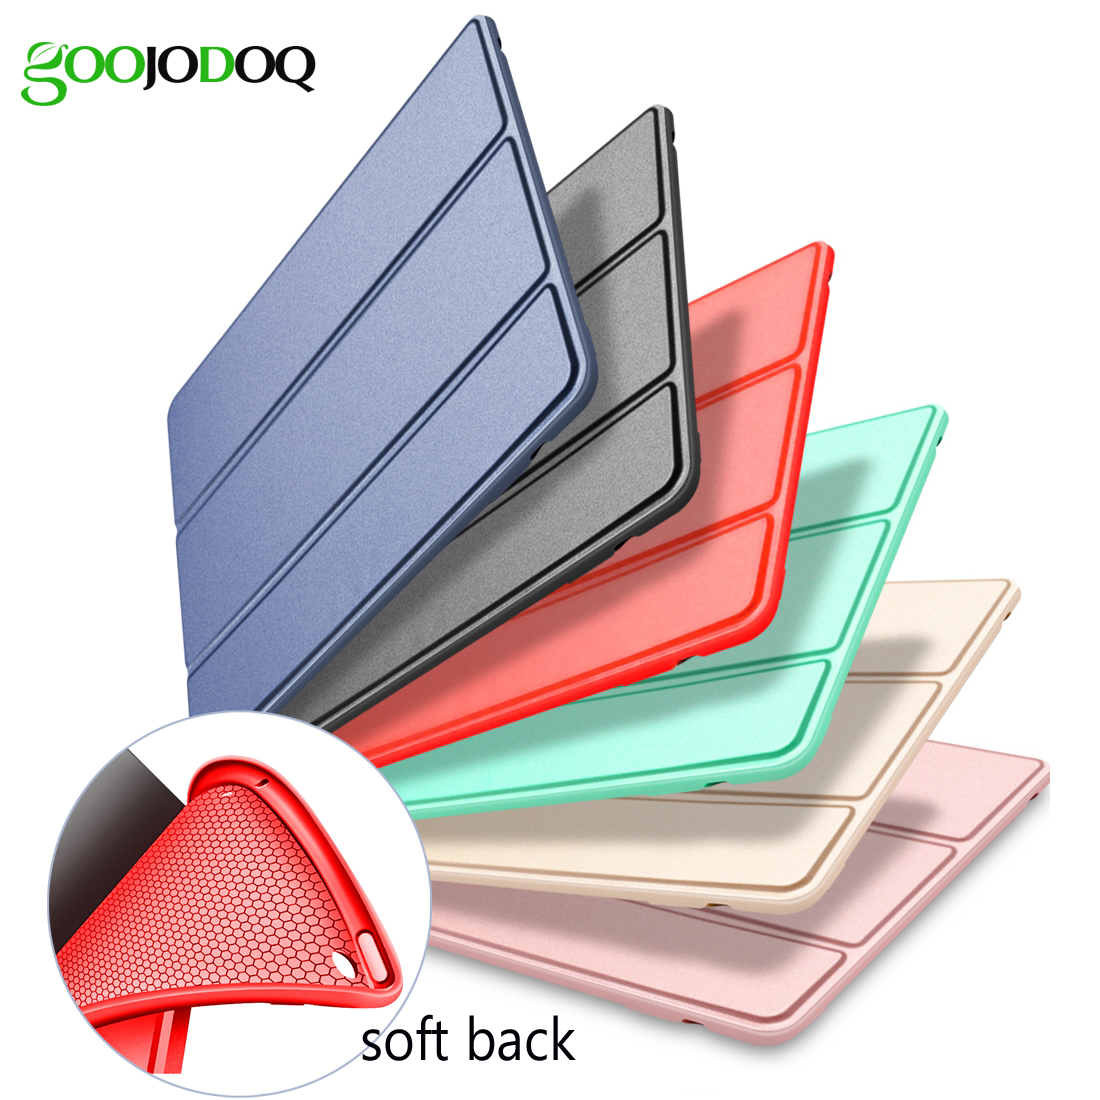 For iPad Air 2 Air 1 Case,Slim Pu Leather+Silicone Soft Back Smart Cover Sturdy Stand Auto Sleep for Apple iPad Air / 5 6 Coque case for ipad air 2 pocaton for tablet apple ipad air 2 case slim crystal clear tpu silicone protective back cover soft shell